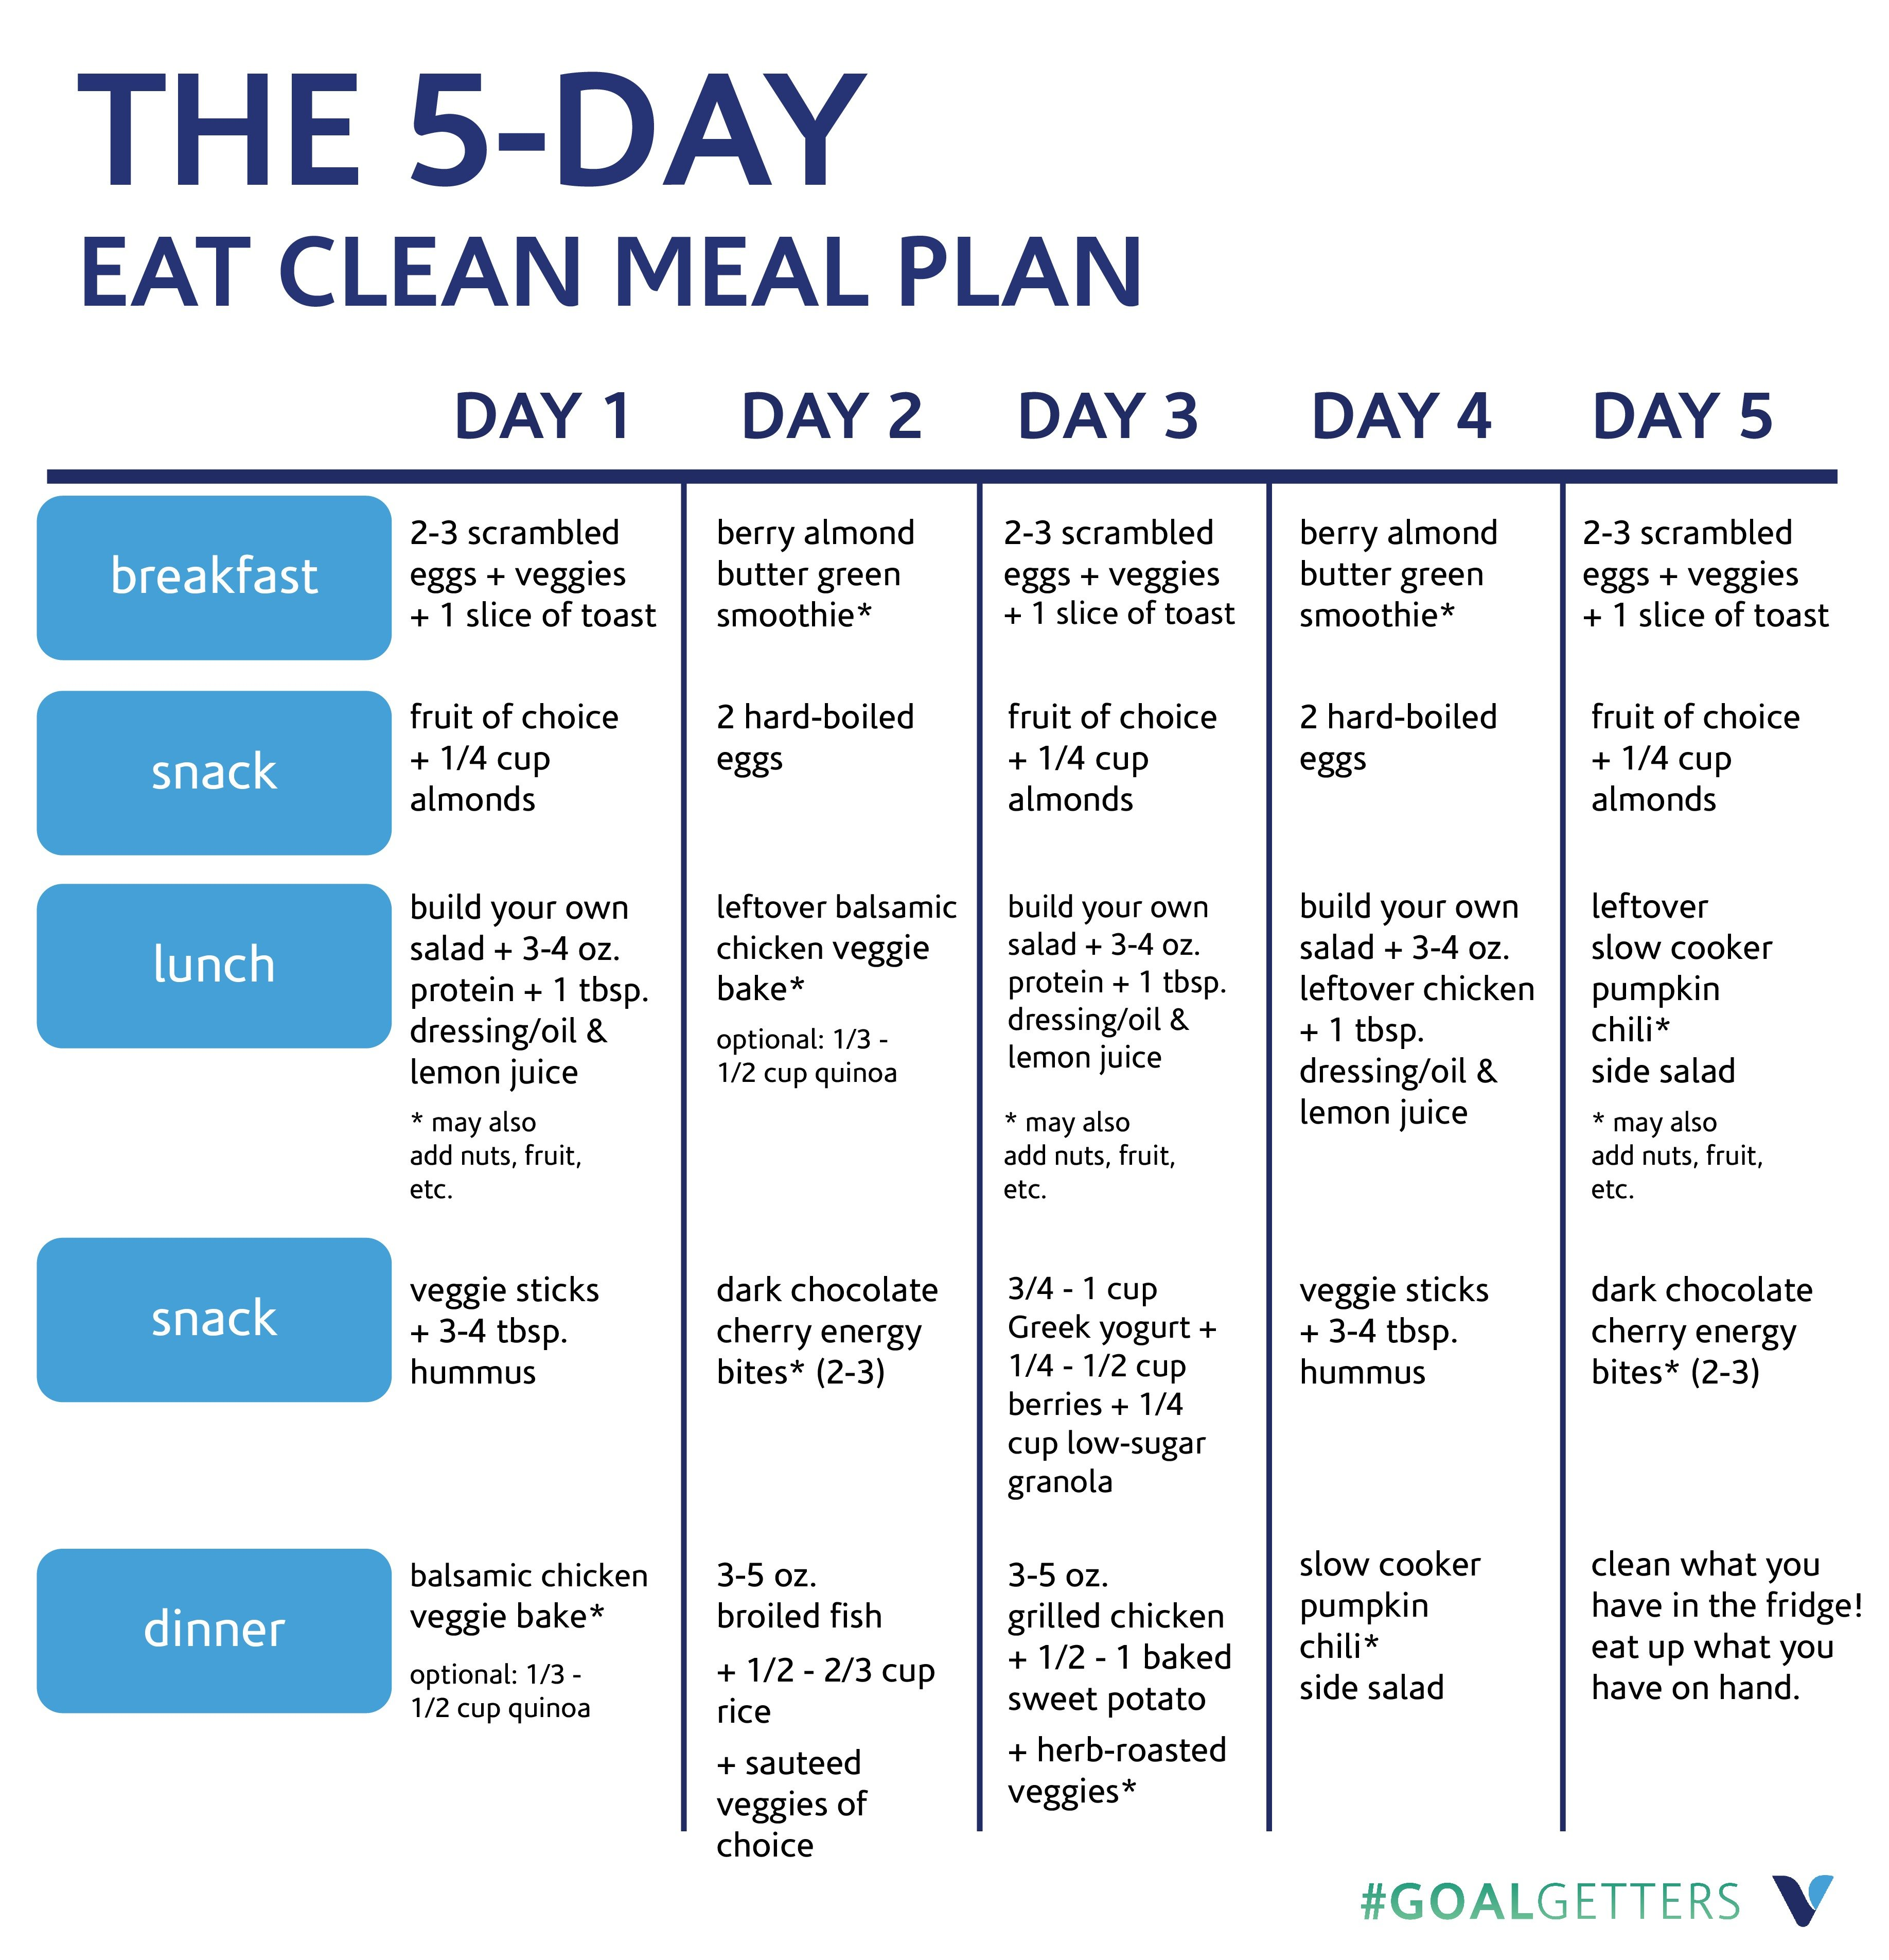 Week 3: Your 5-Day Meal Plan | What's Good by V